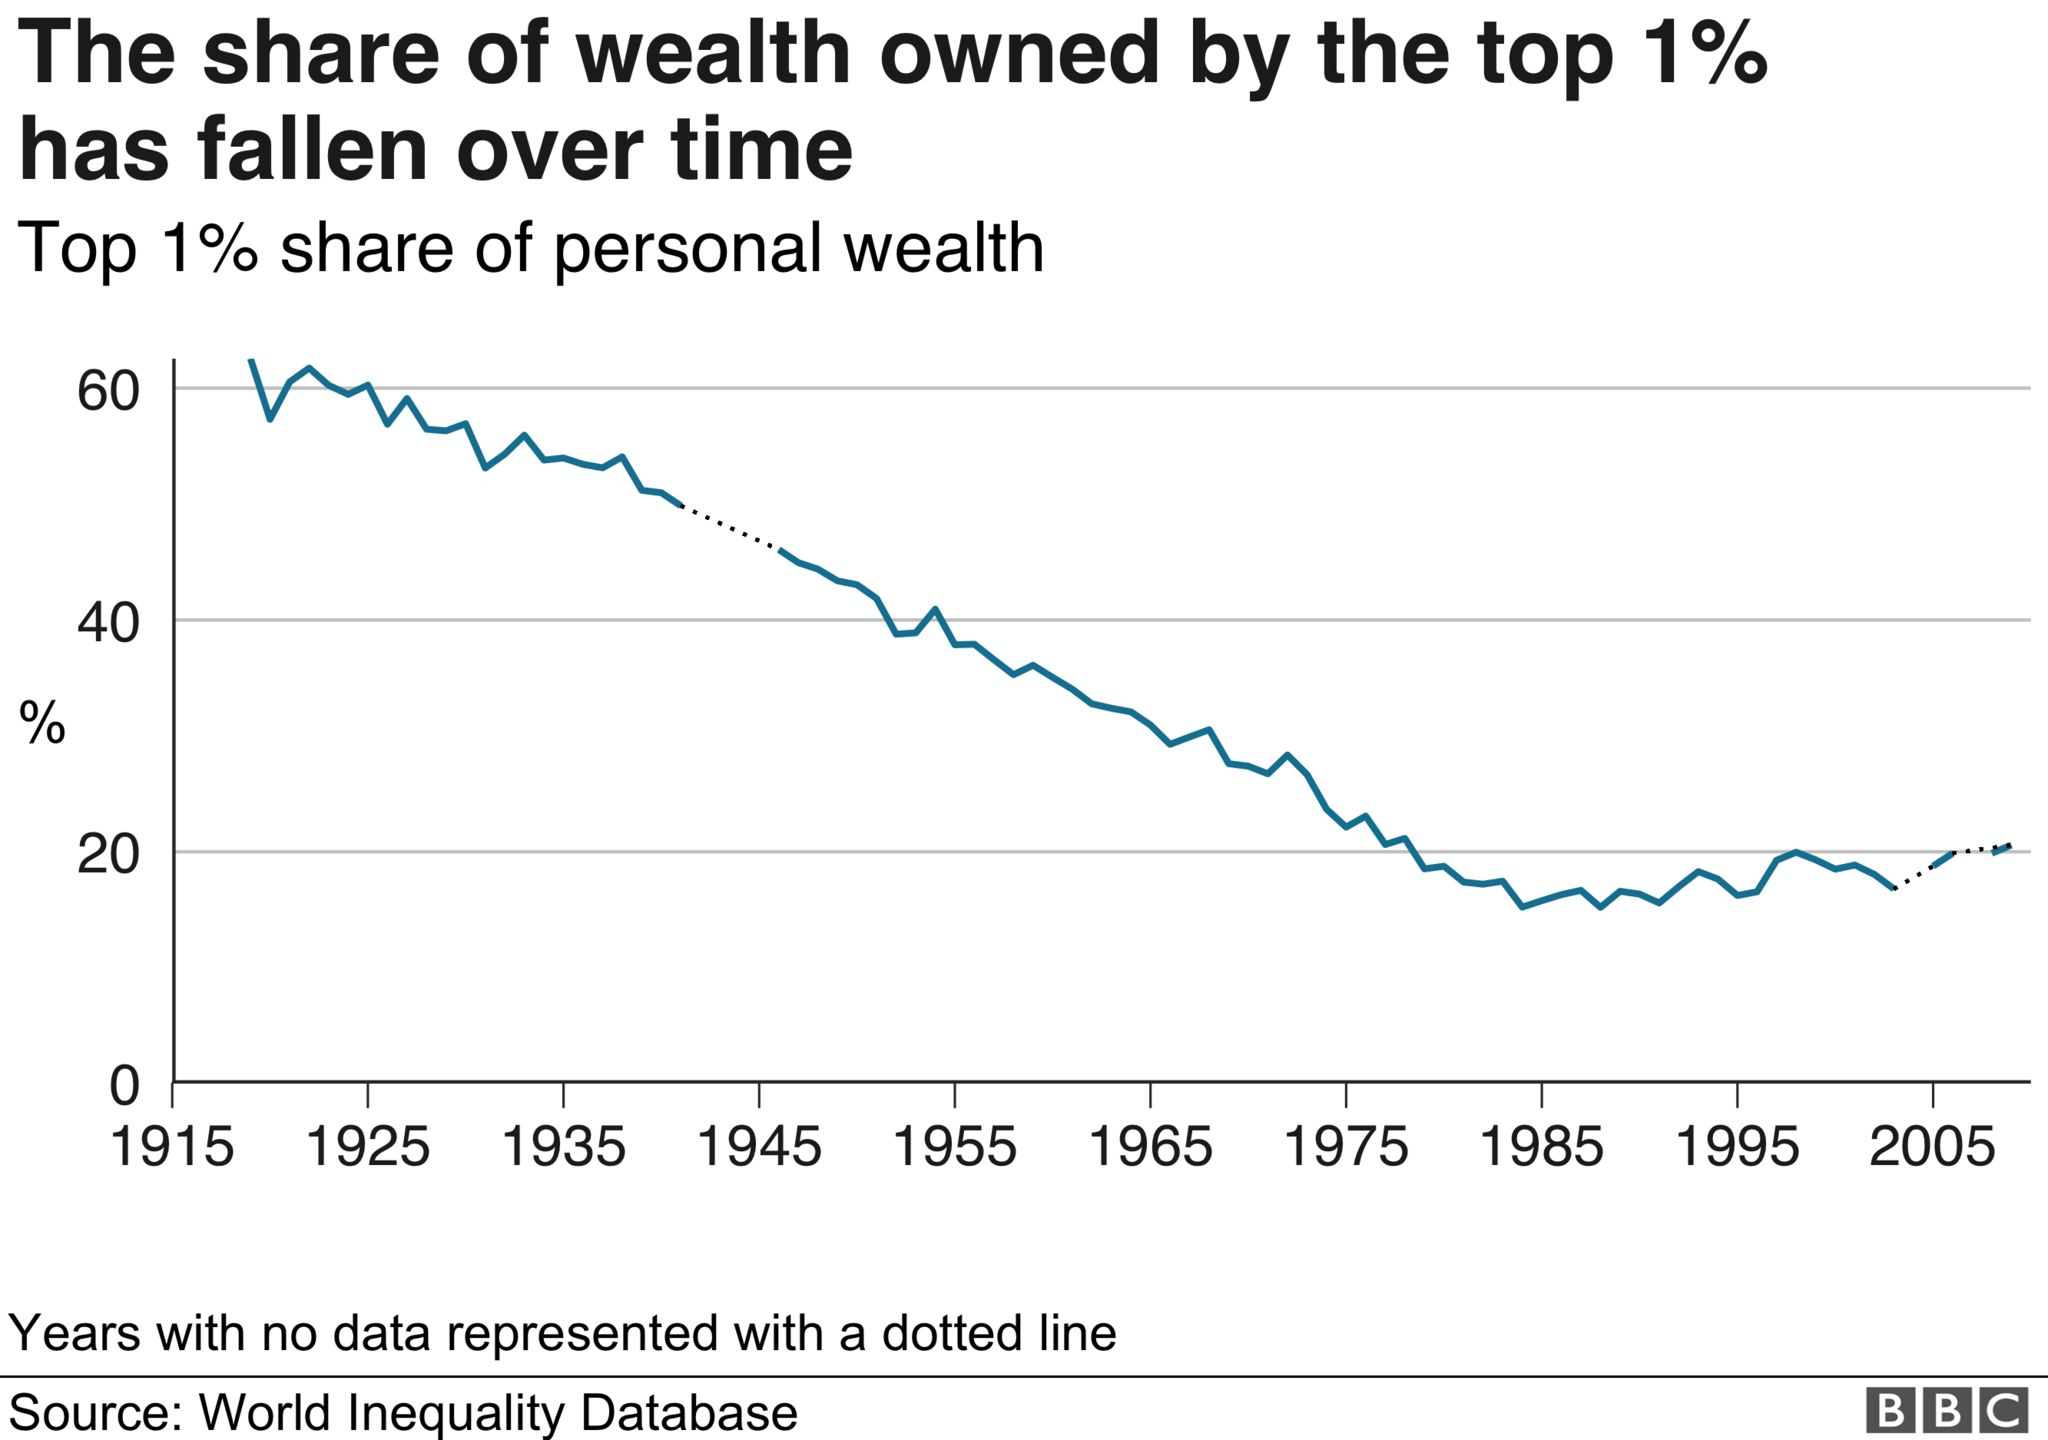 Chart showing how the share of wealth owned by the 1% has fallen over time